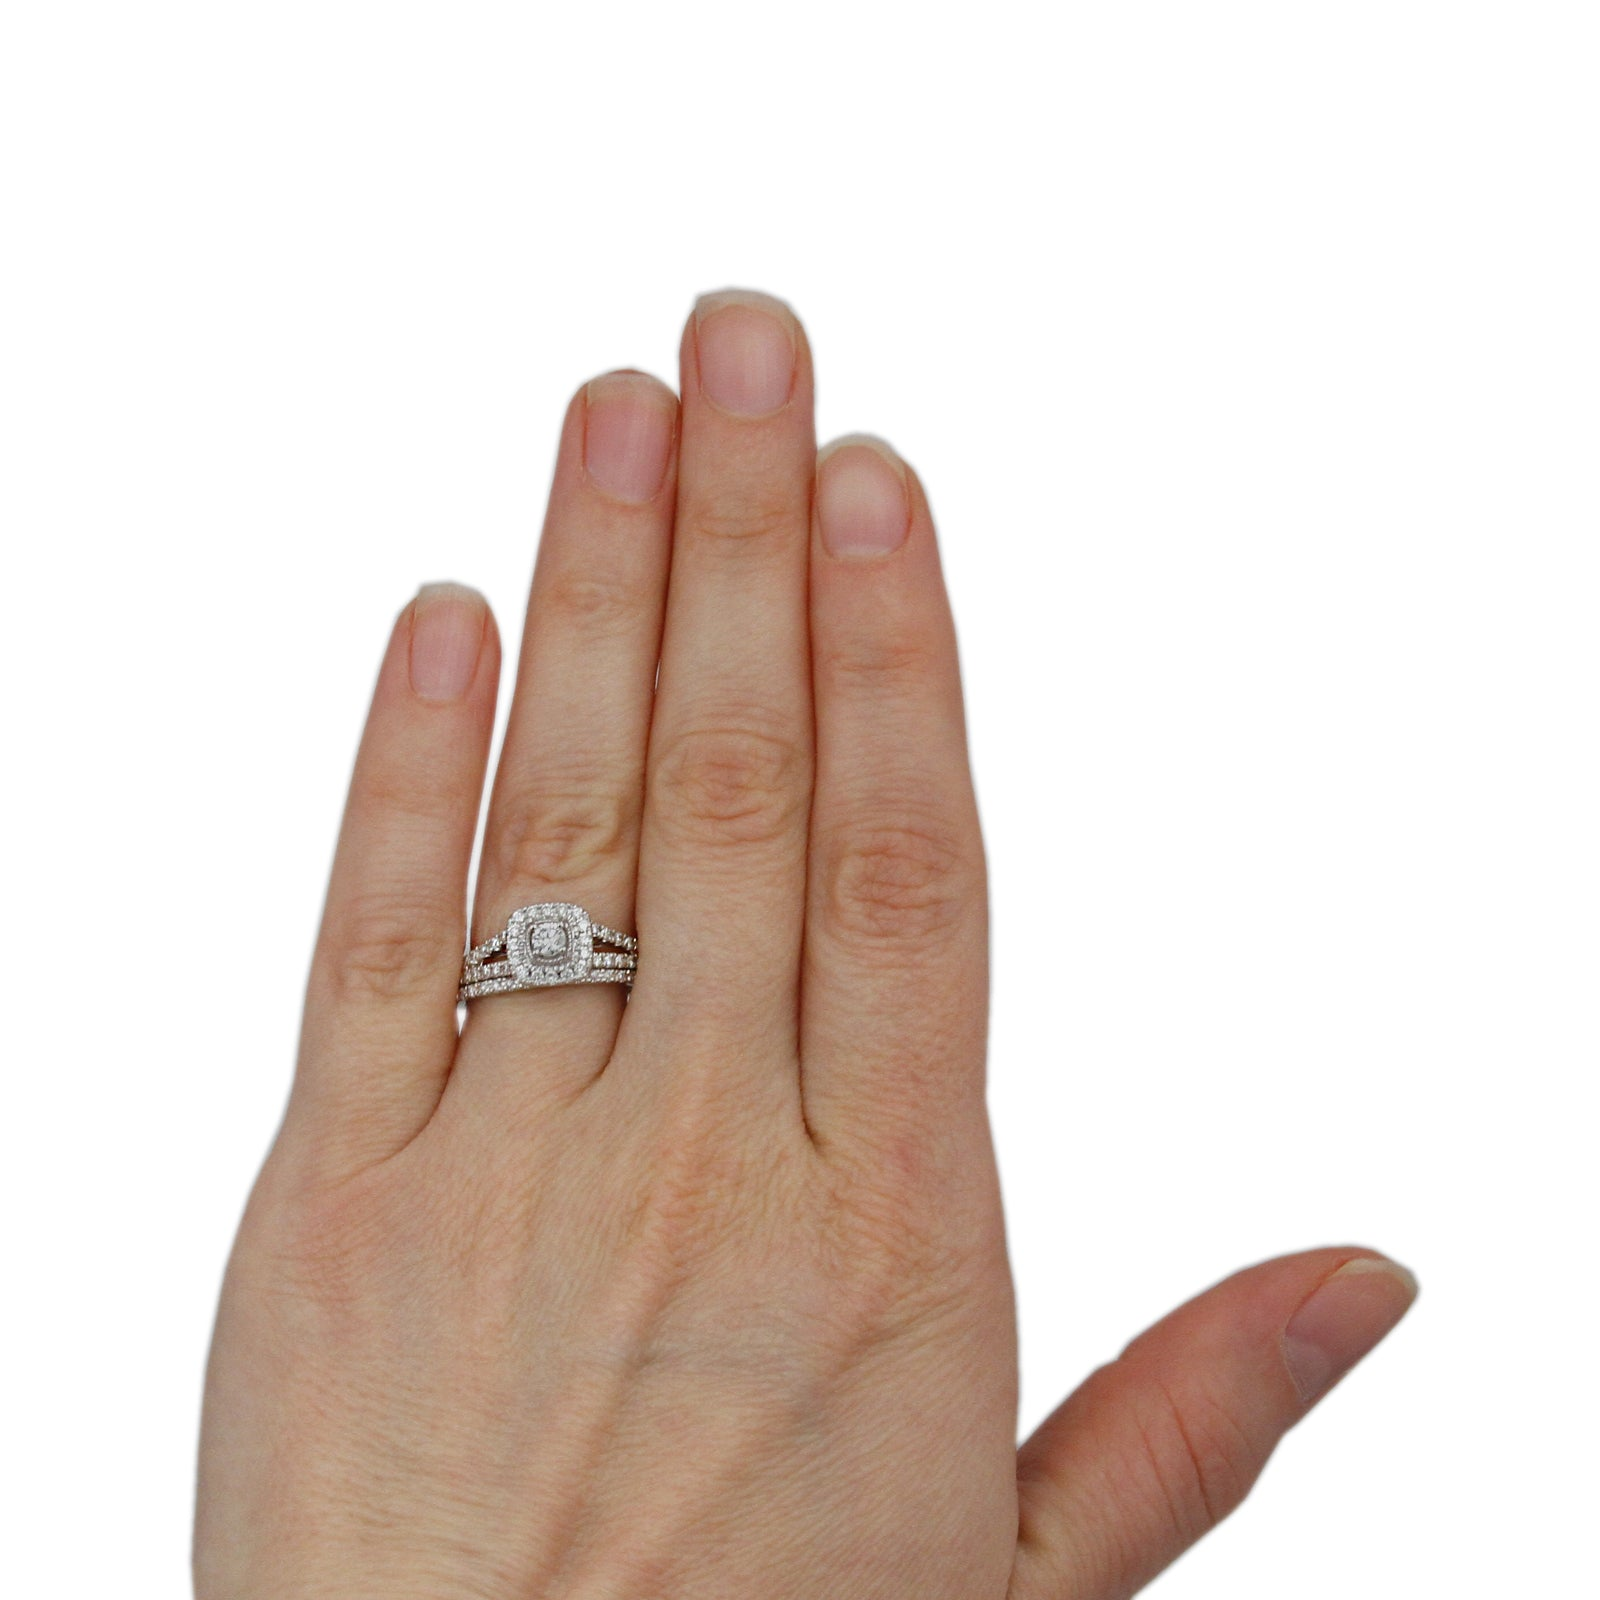 SPECIAL! Crown Collection .50cttw Bridal Set w/ Round Diamond Center & Cushion Shaped Bezel in 14k-2